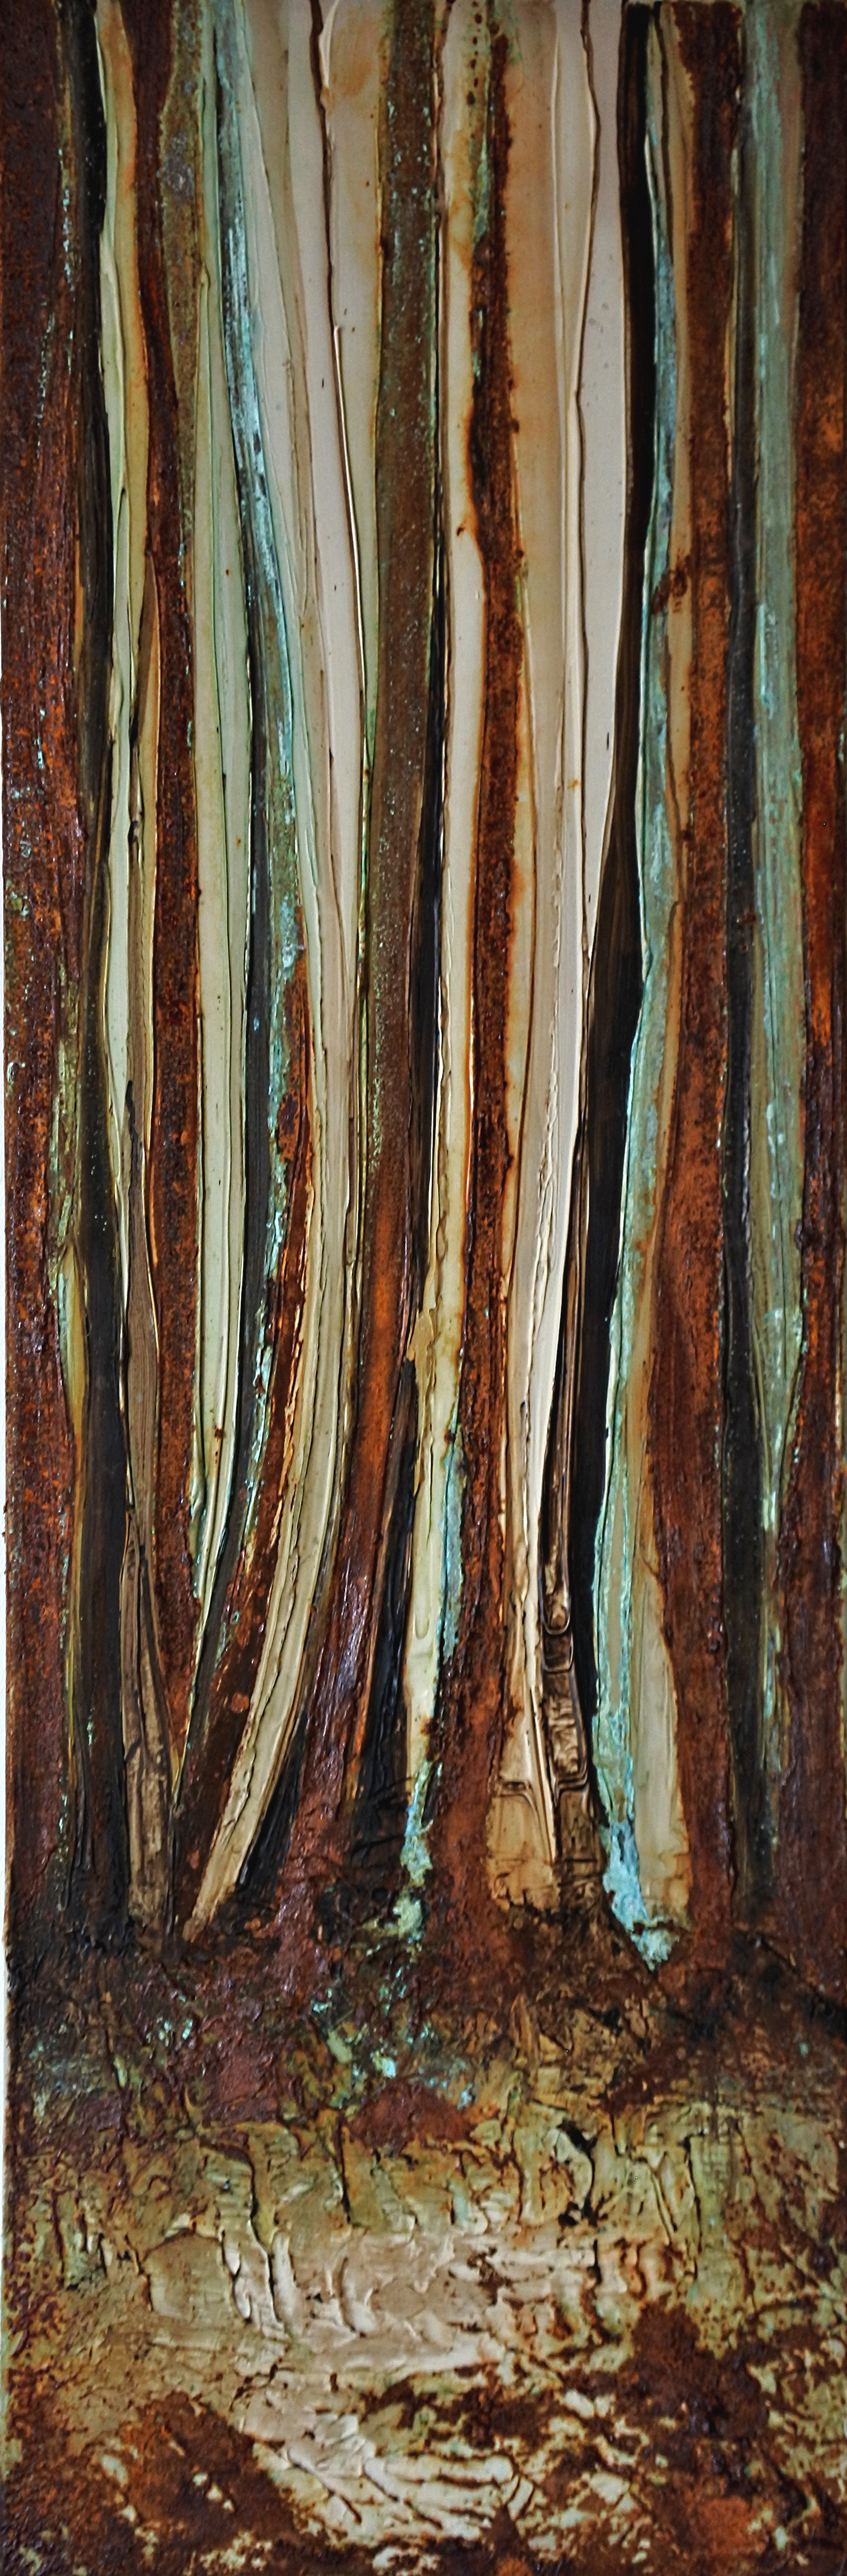 Iron Wood / Sonja Riemer ART